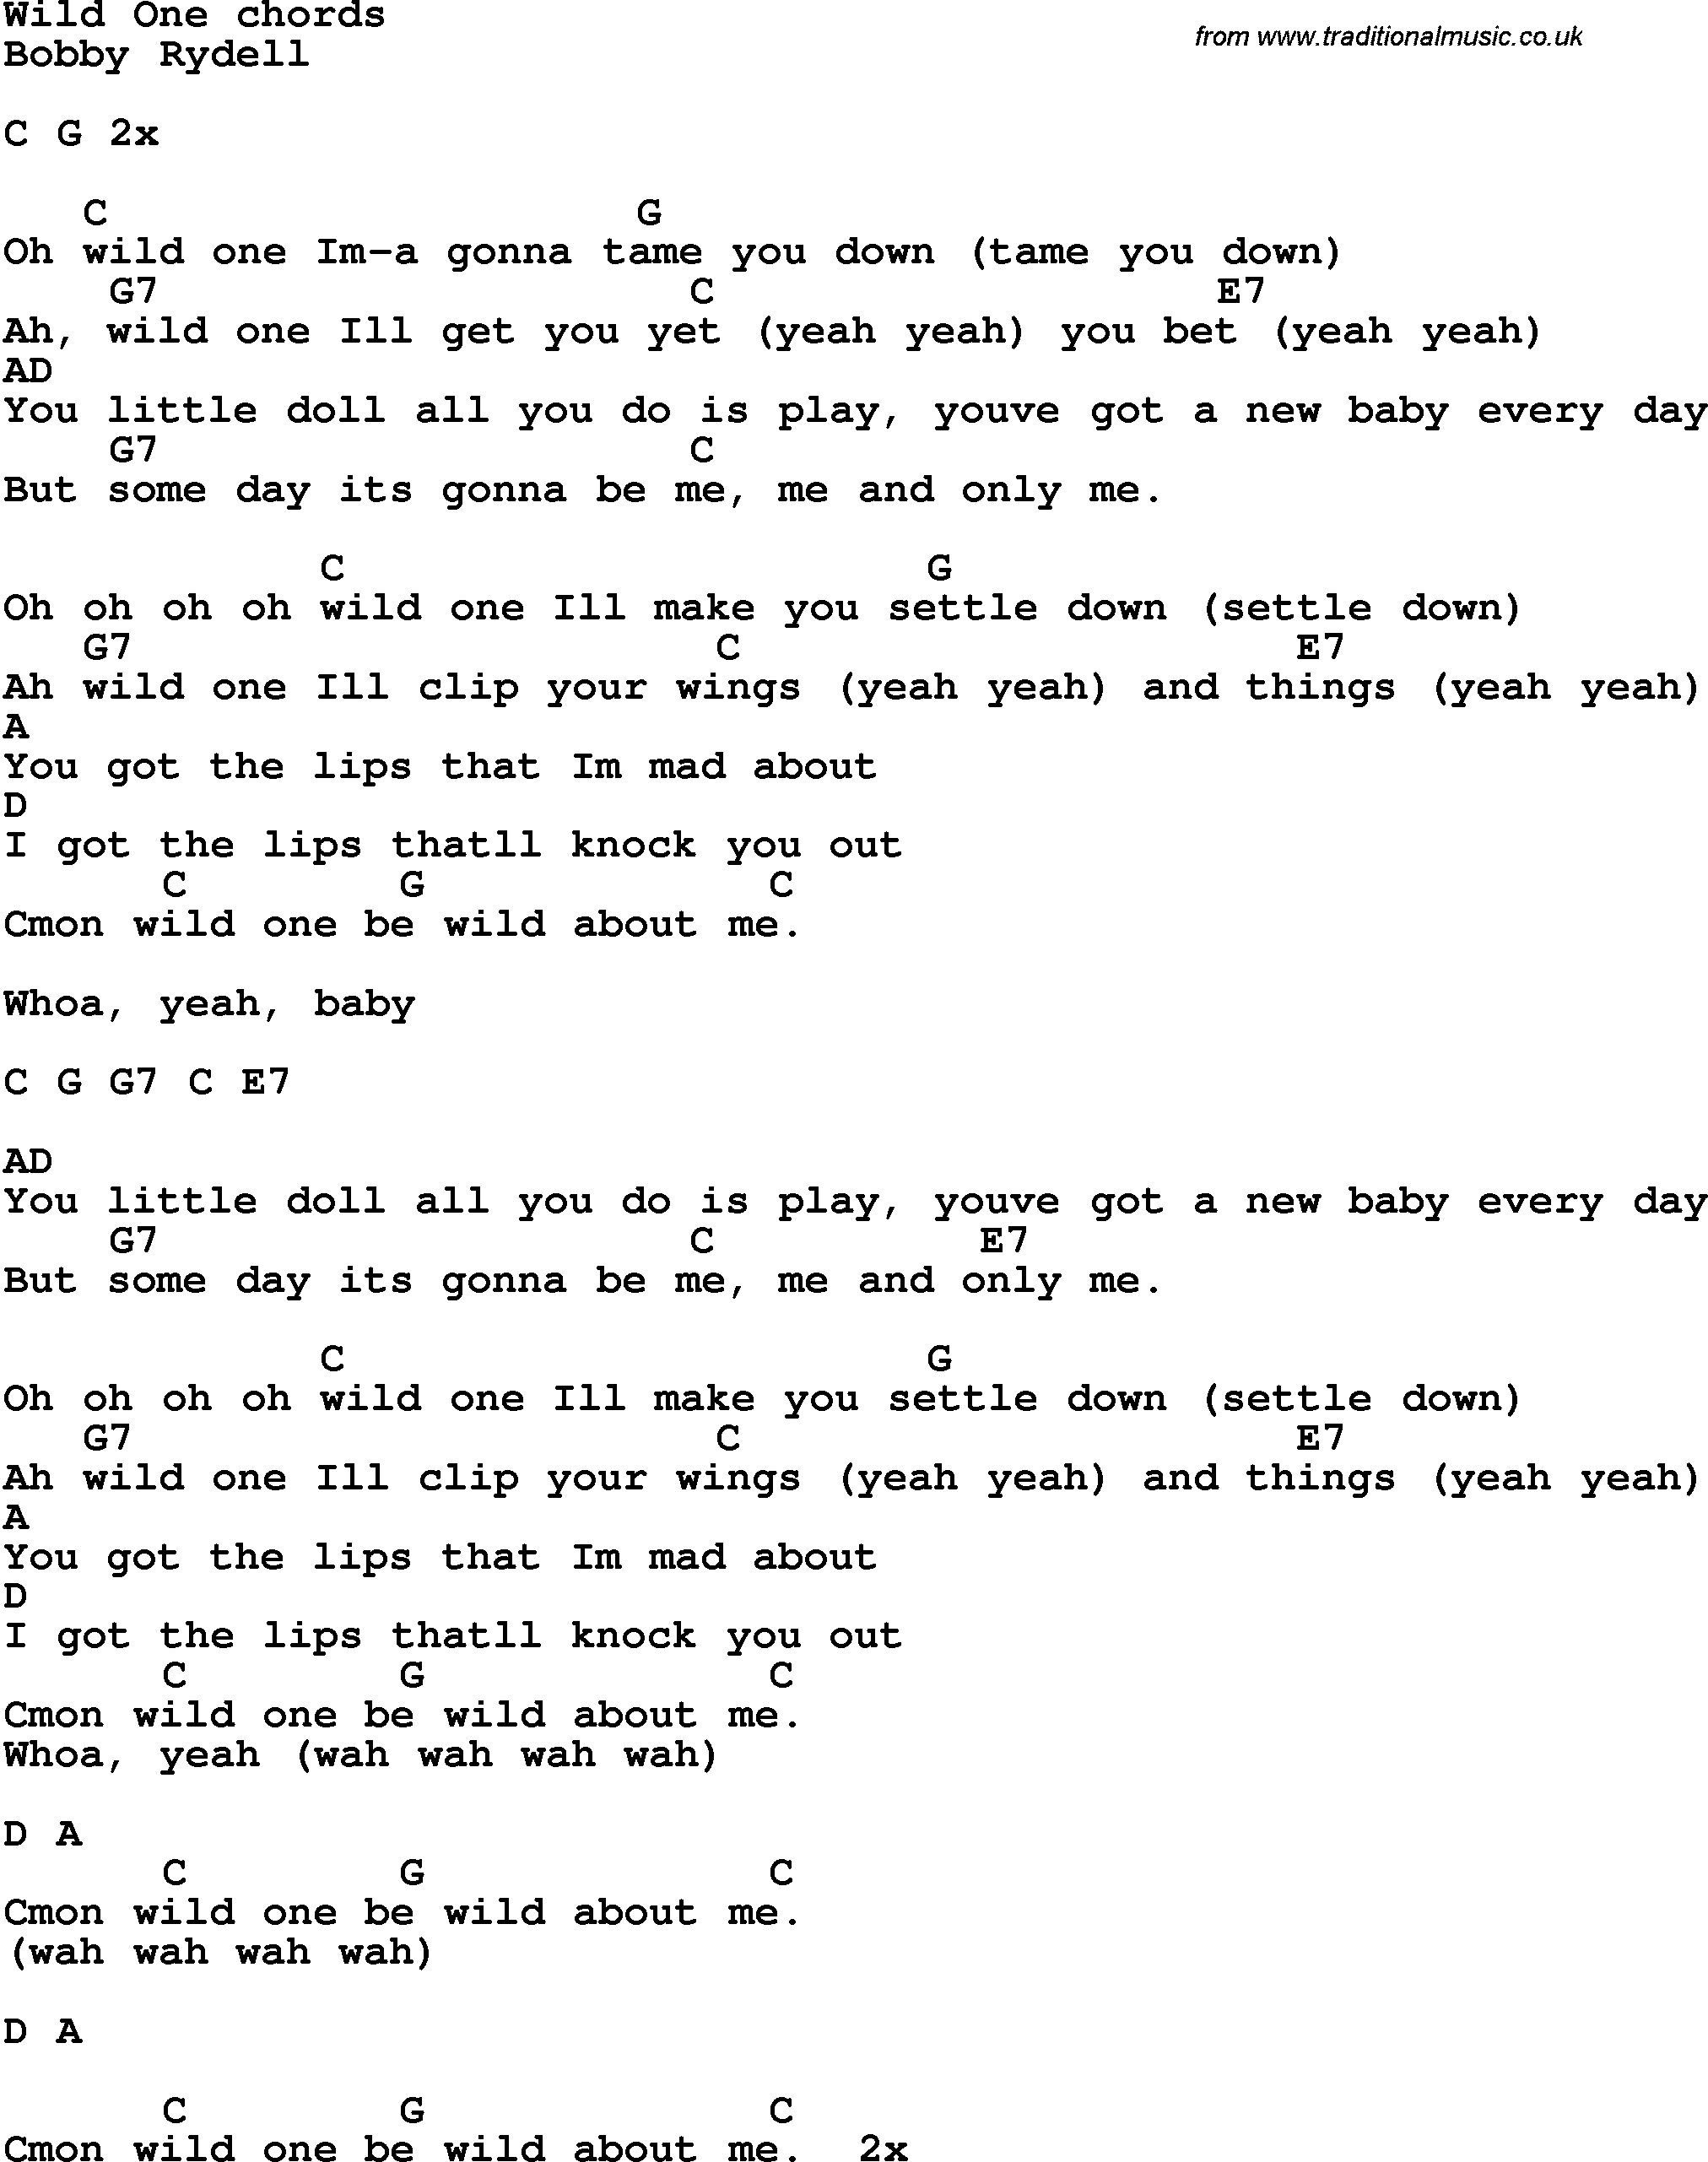 Song Lyrics With Guitar Chords For Wild One